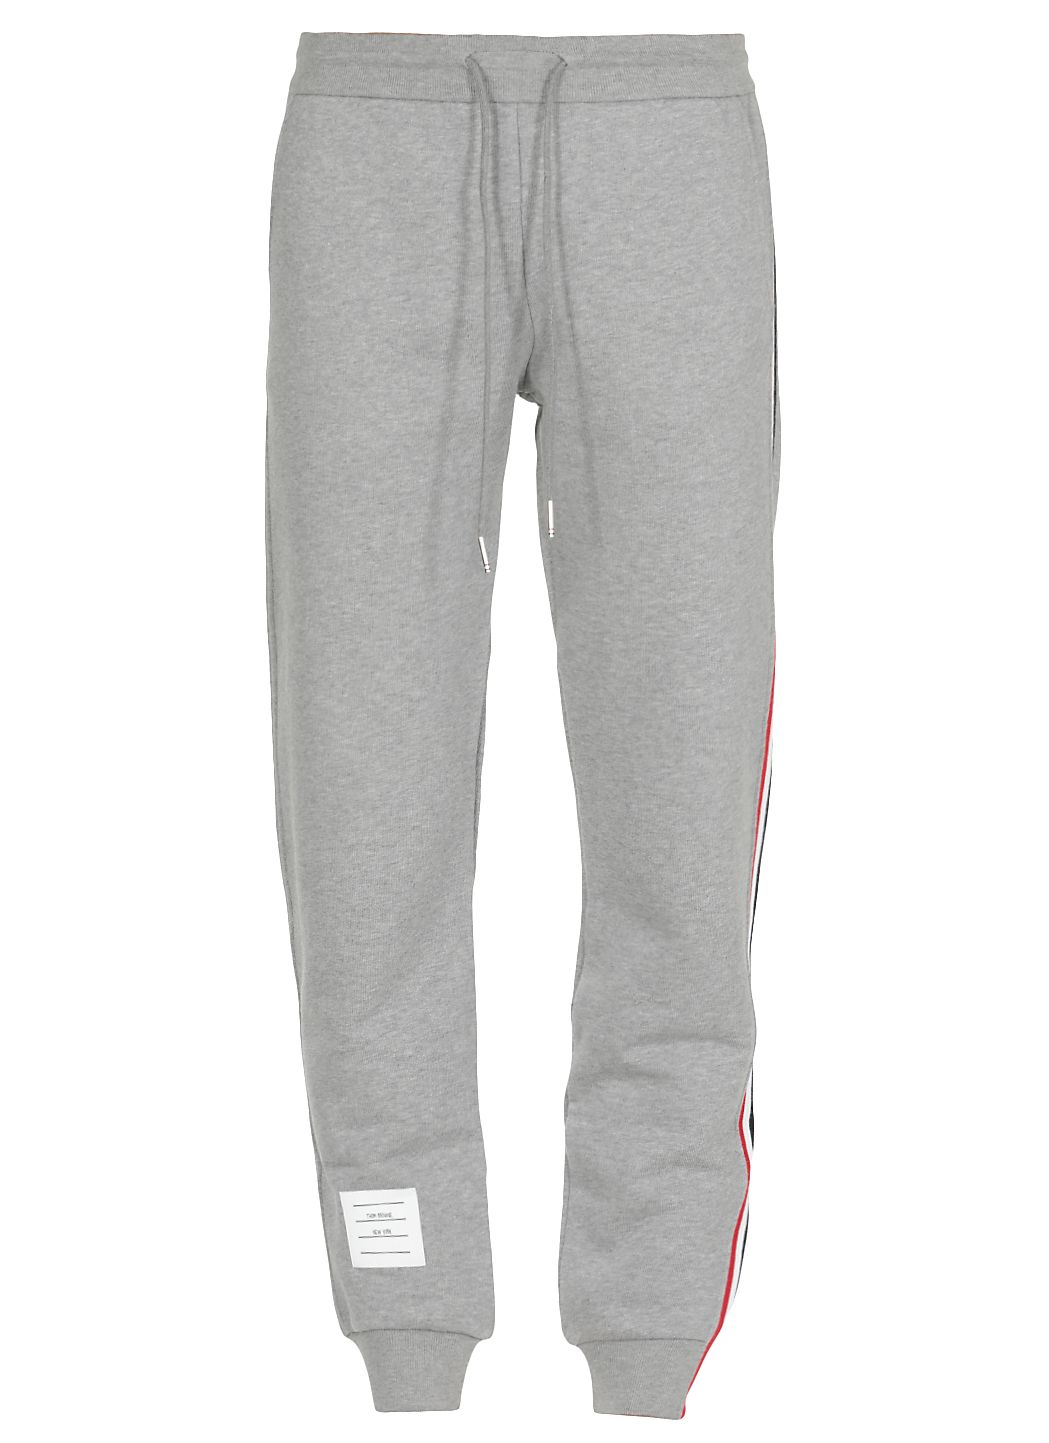 Pantalone in cotone sweatpants